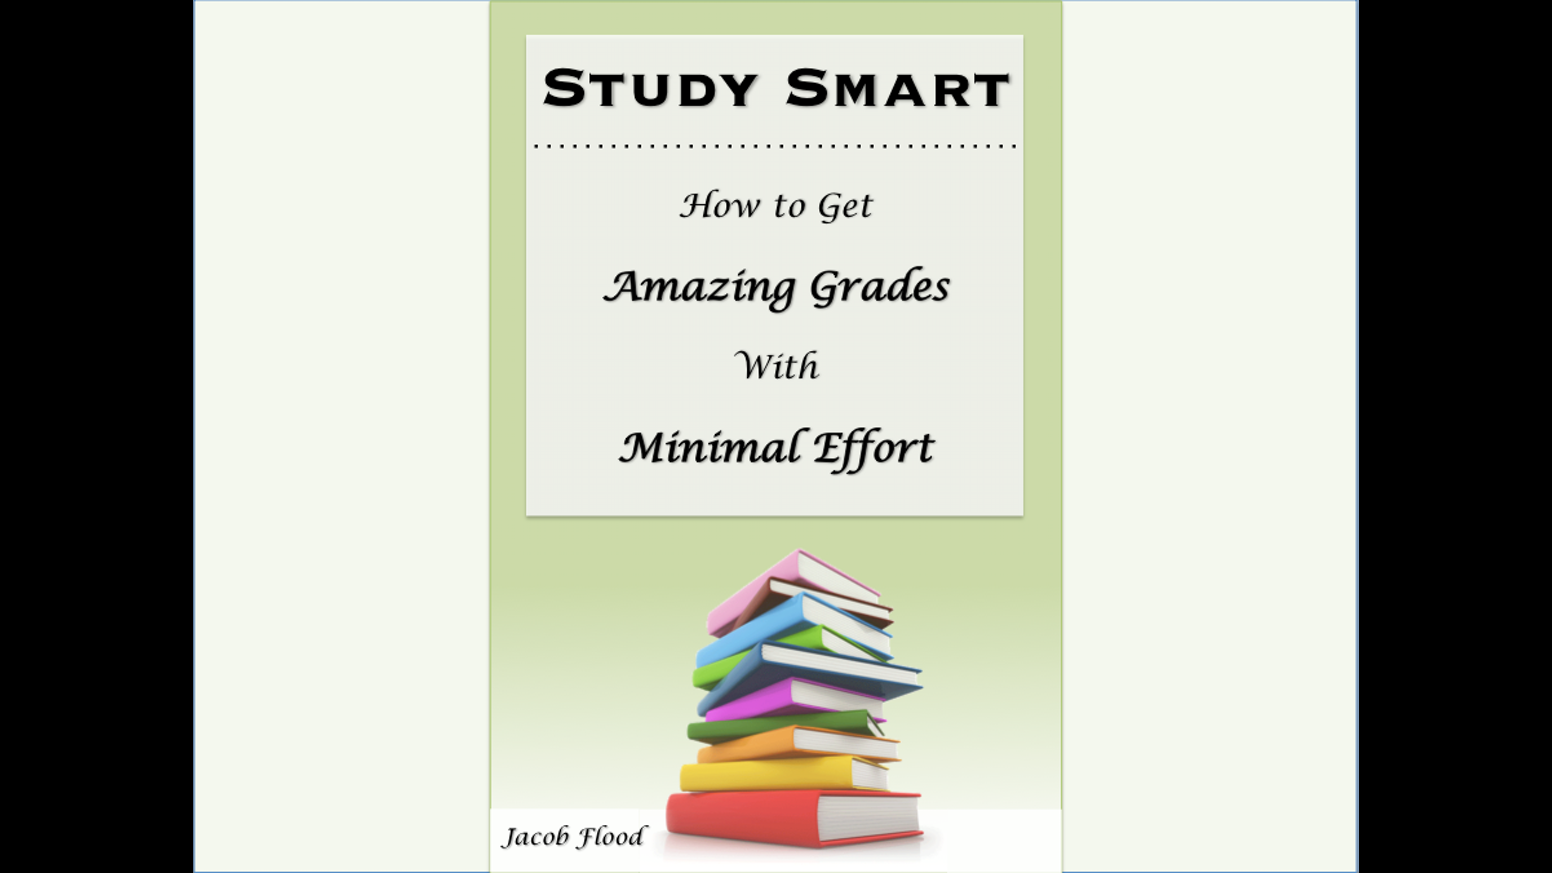 study smart how to get amazing grades minimal effort by the ultimate mini st guide to getting better grades in less time